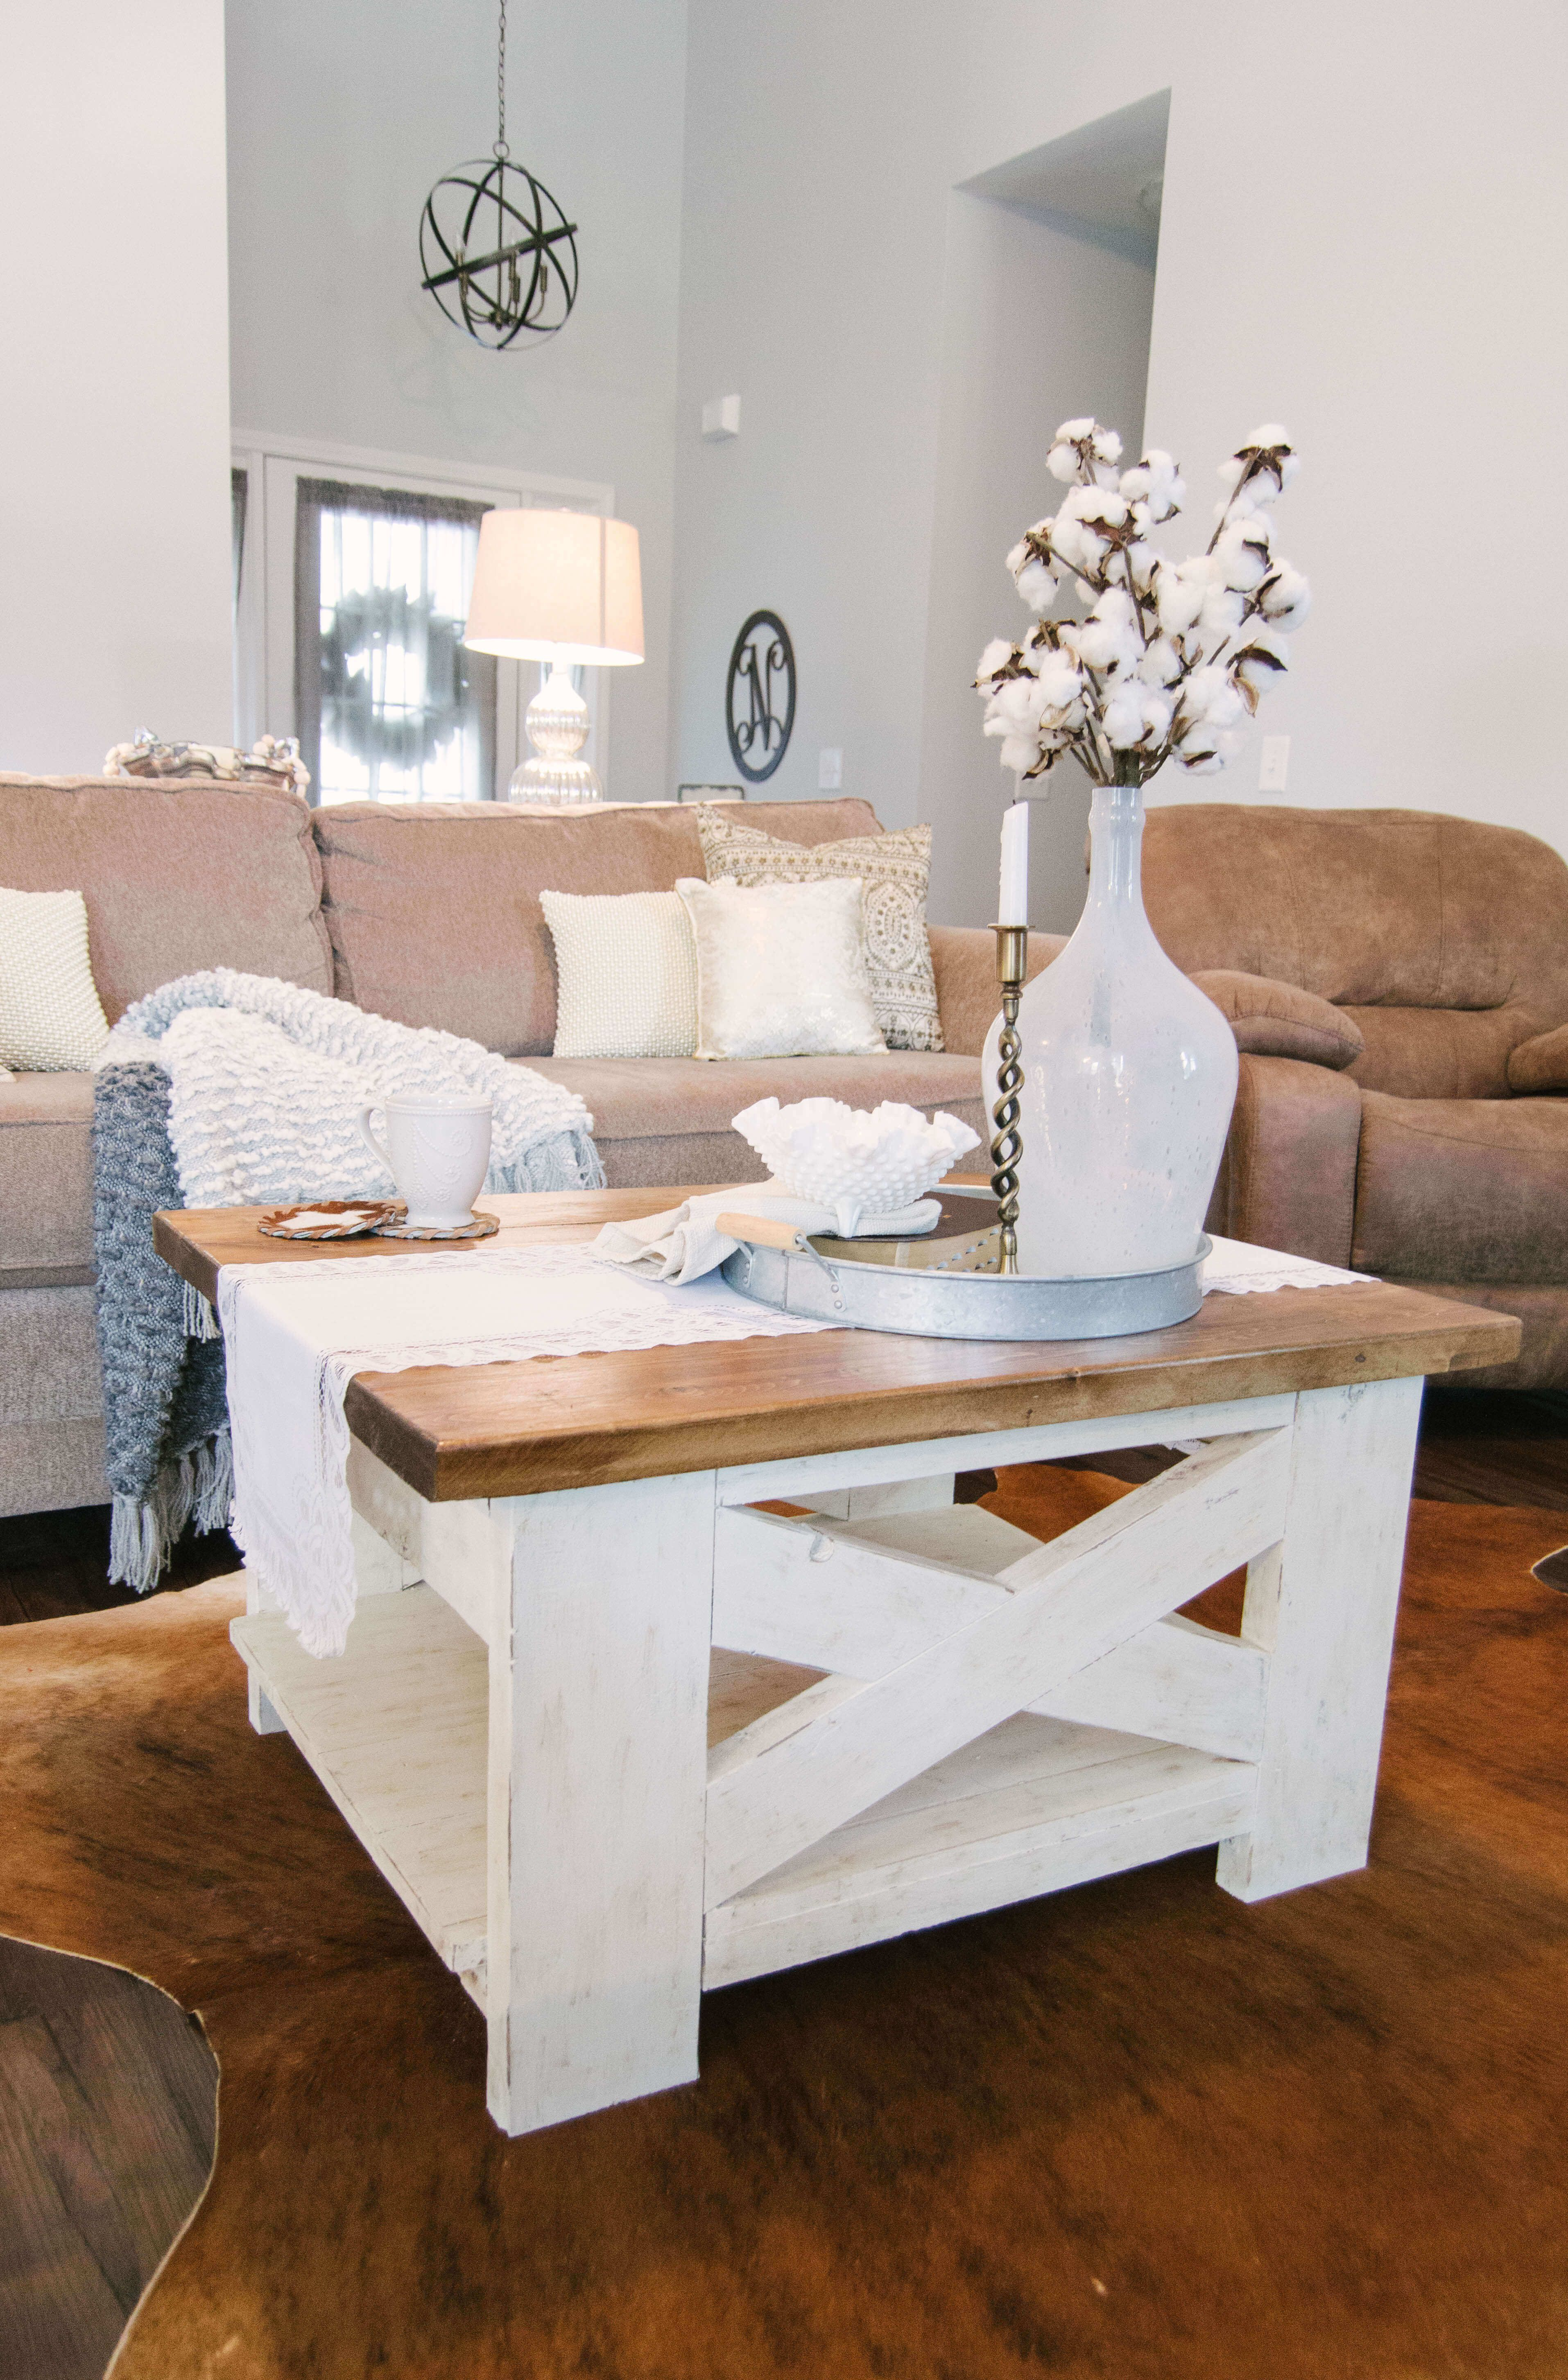 Handcrafted Farmhouse Coffee Table Diy Farmhouse Farmhouse Style Farmhouse Decor Farmh Shabby Chic Coffee Table Coffee Table Farmhouse Farmhouse Chic Decor